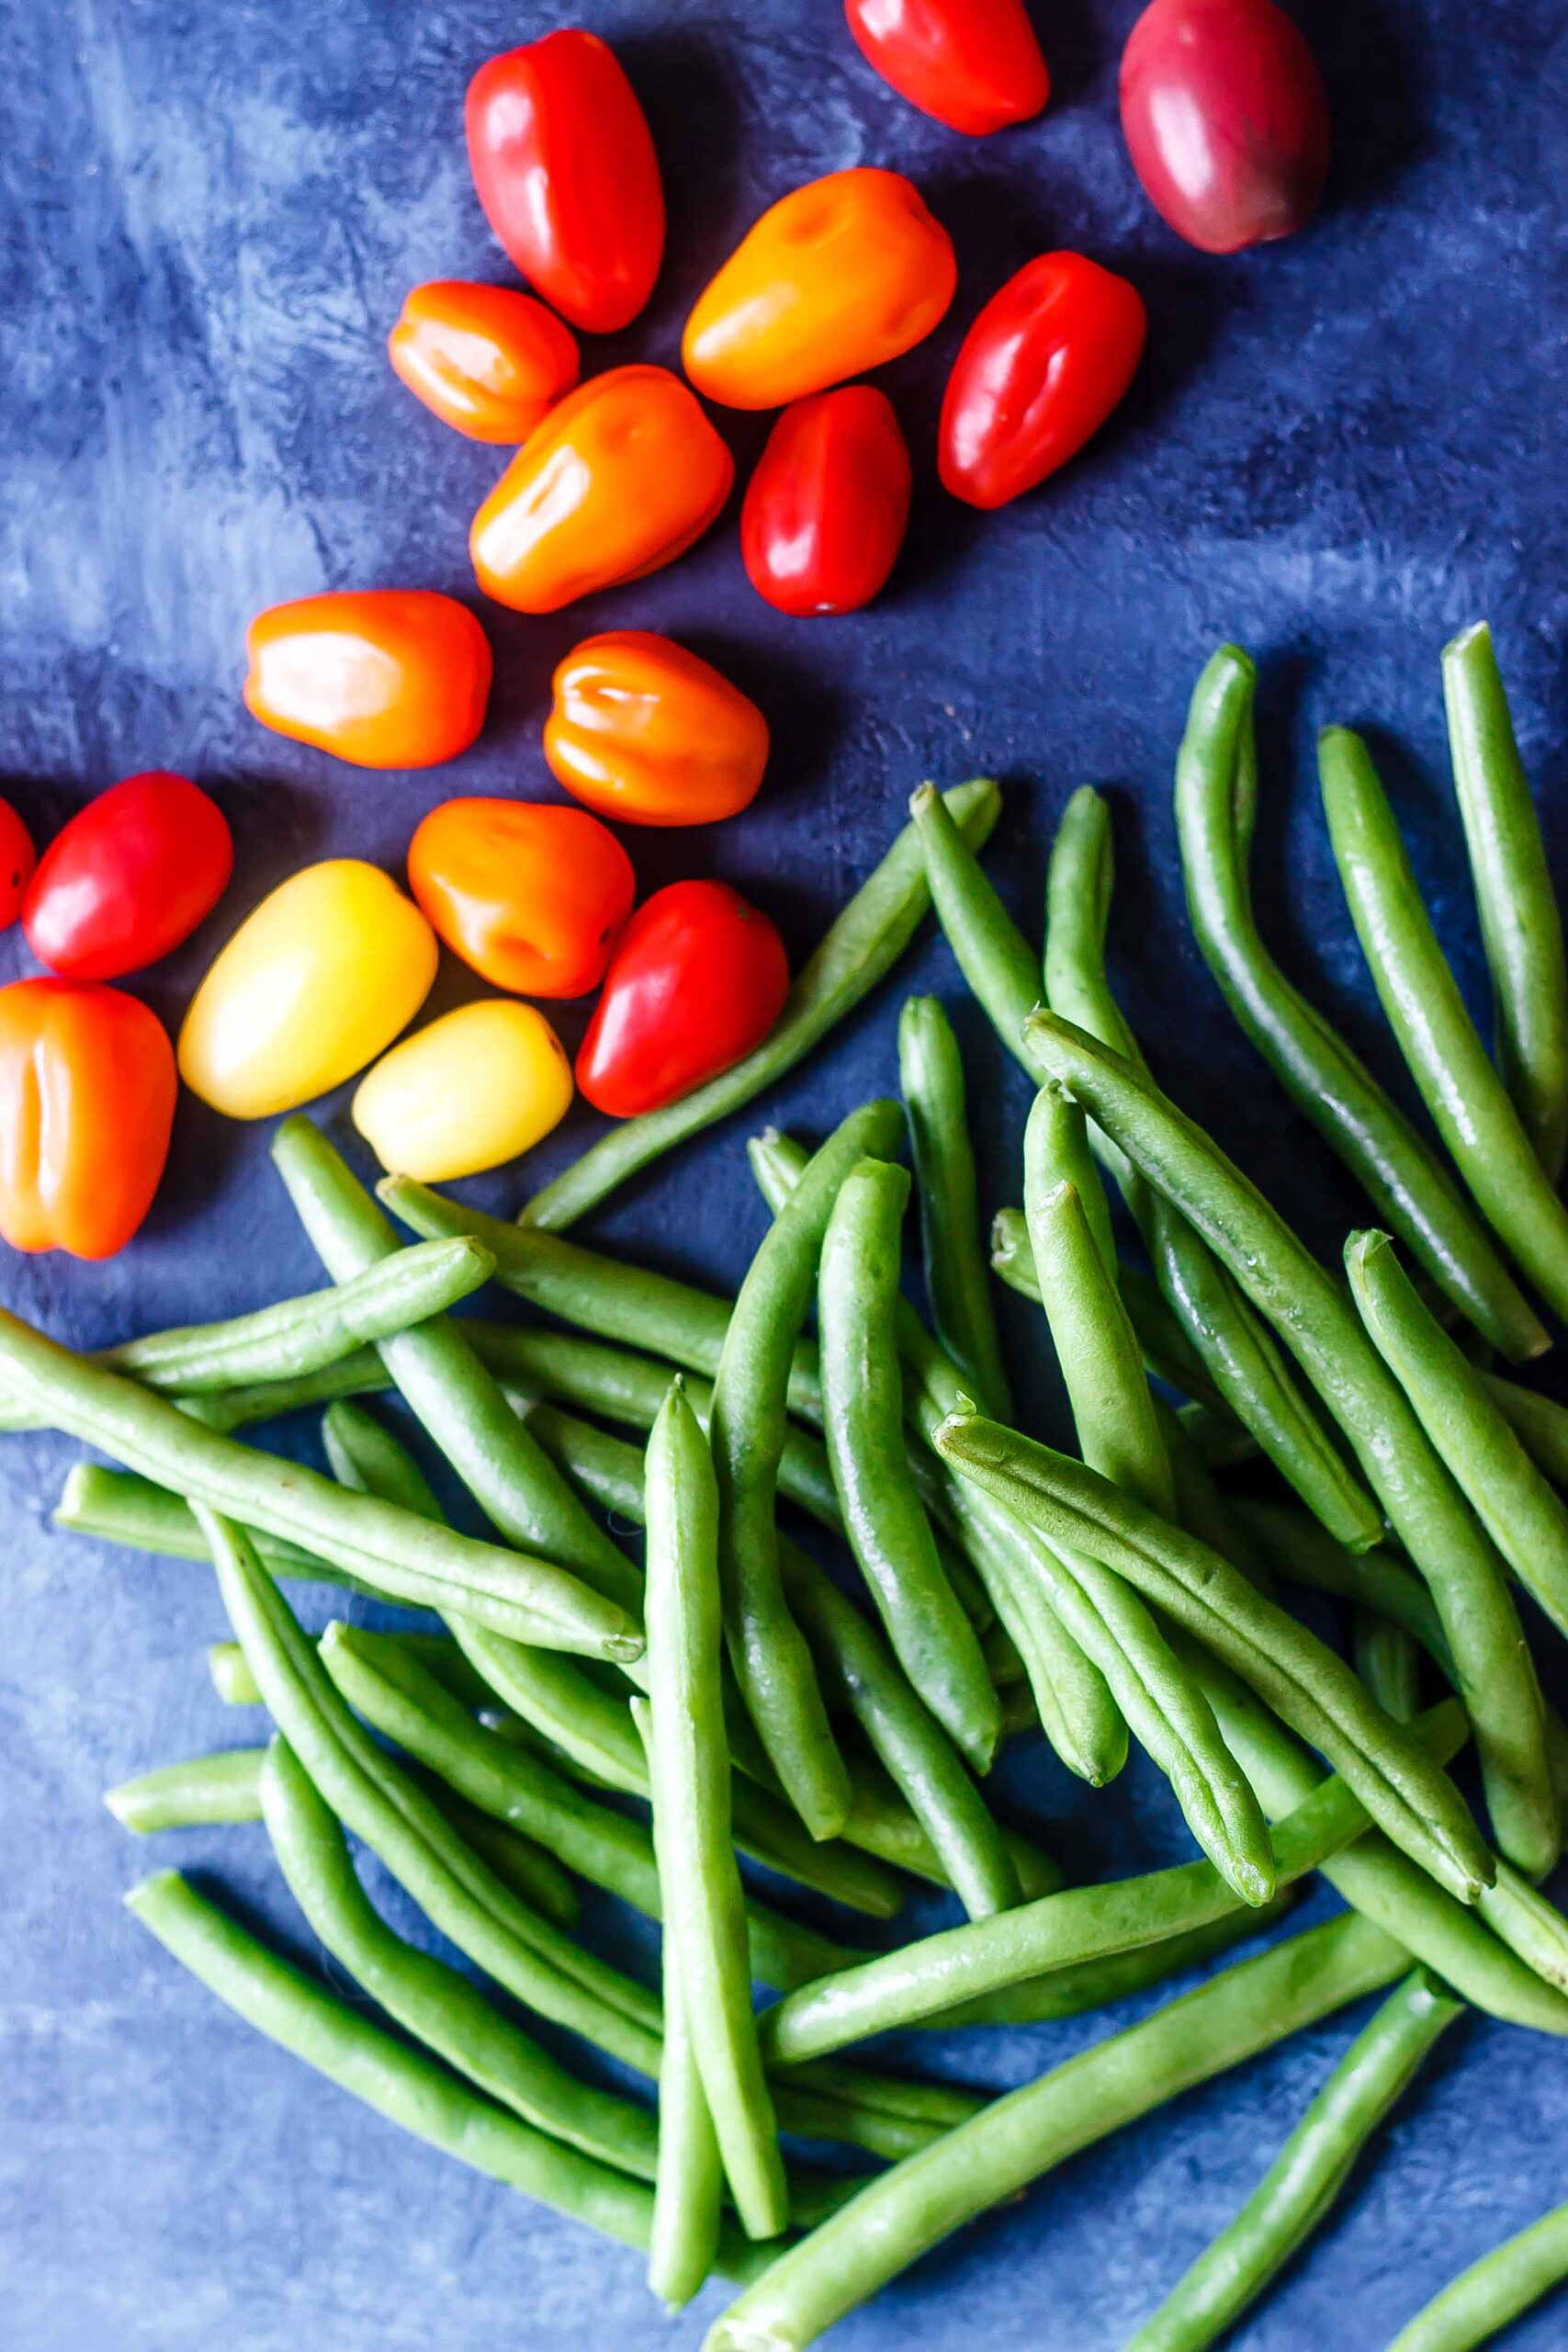 Green Beans and Cherry Tomatoes on a blue background